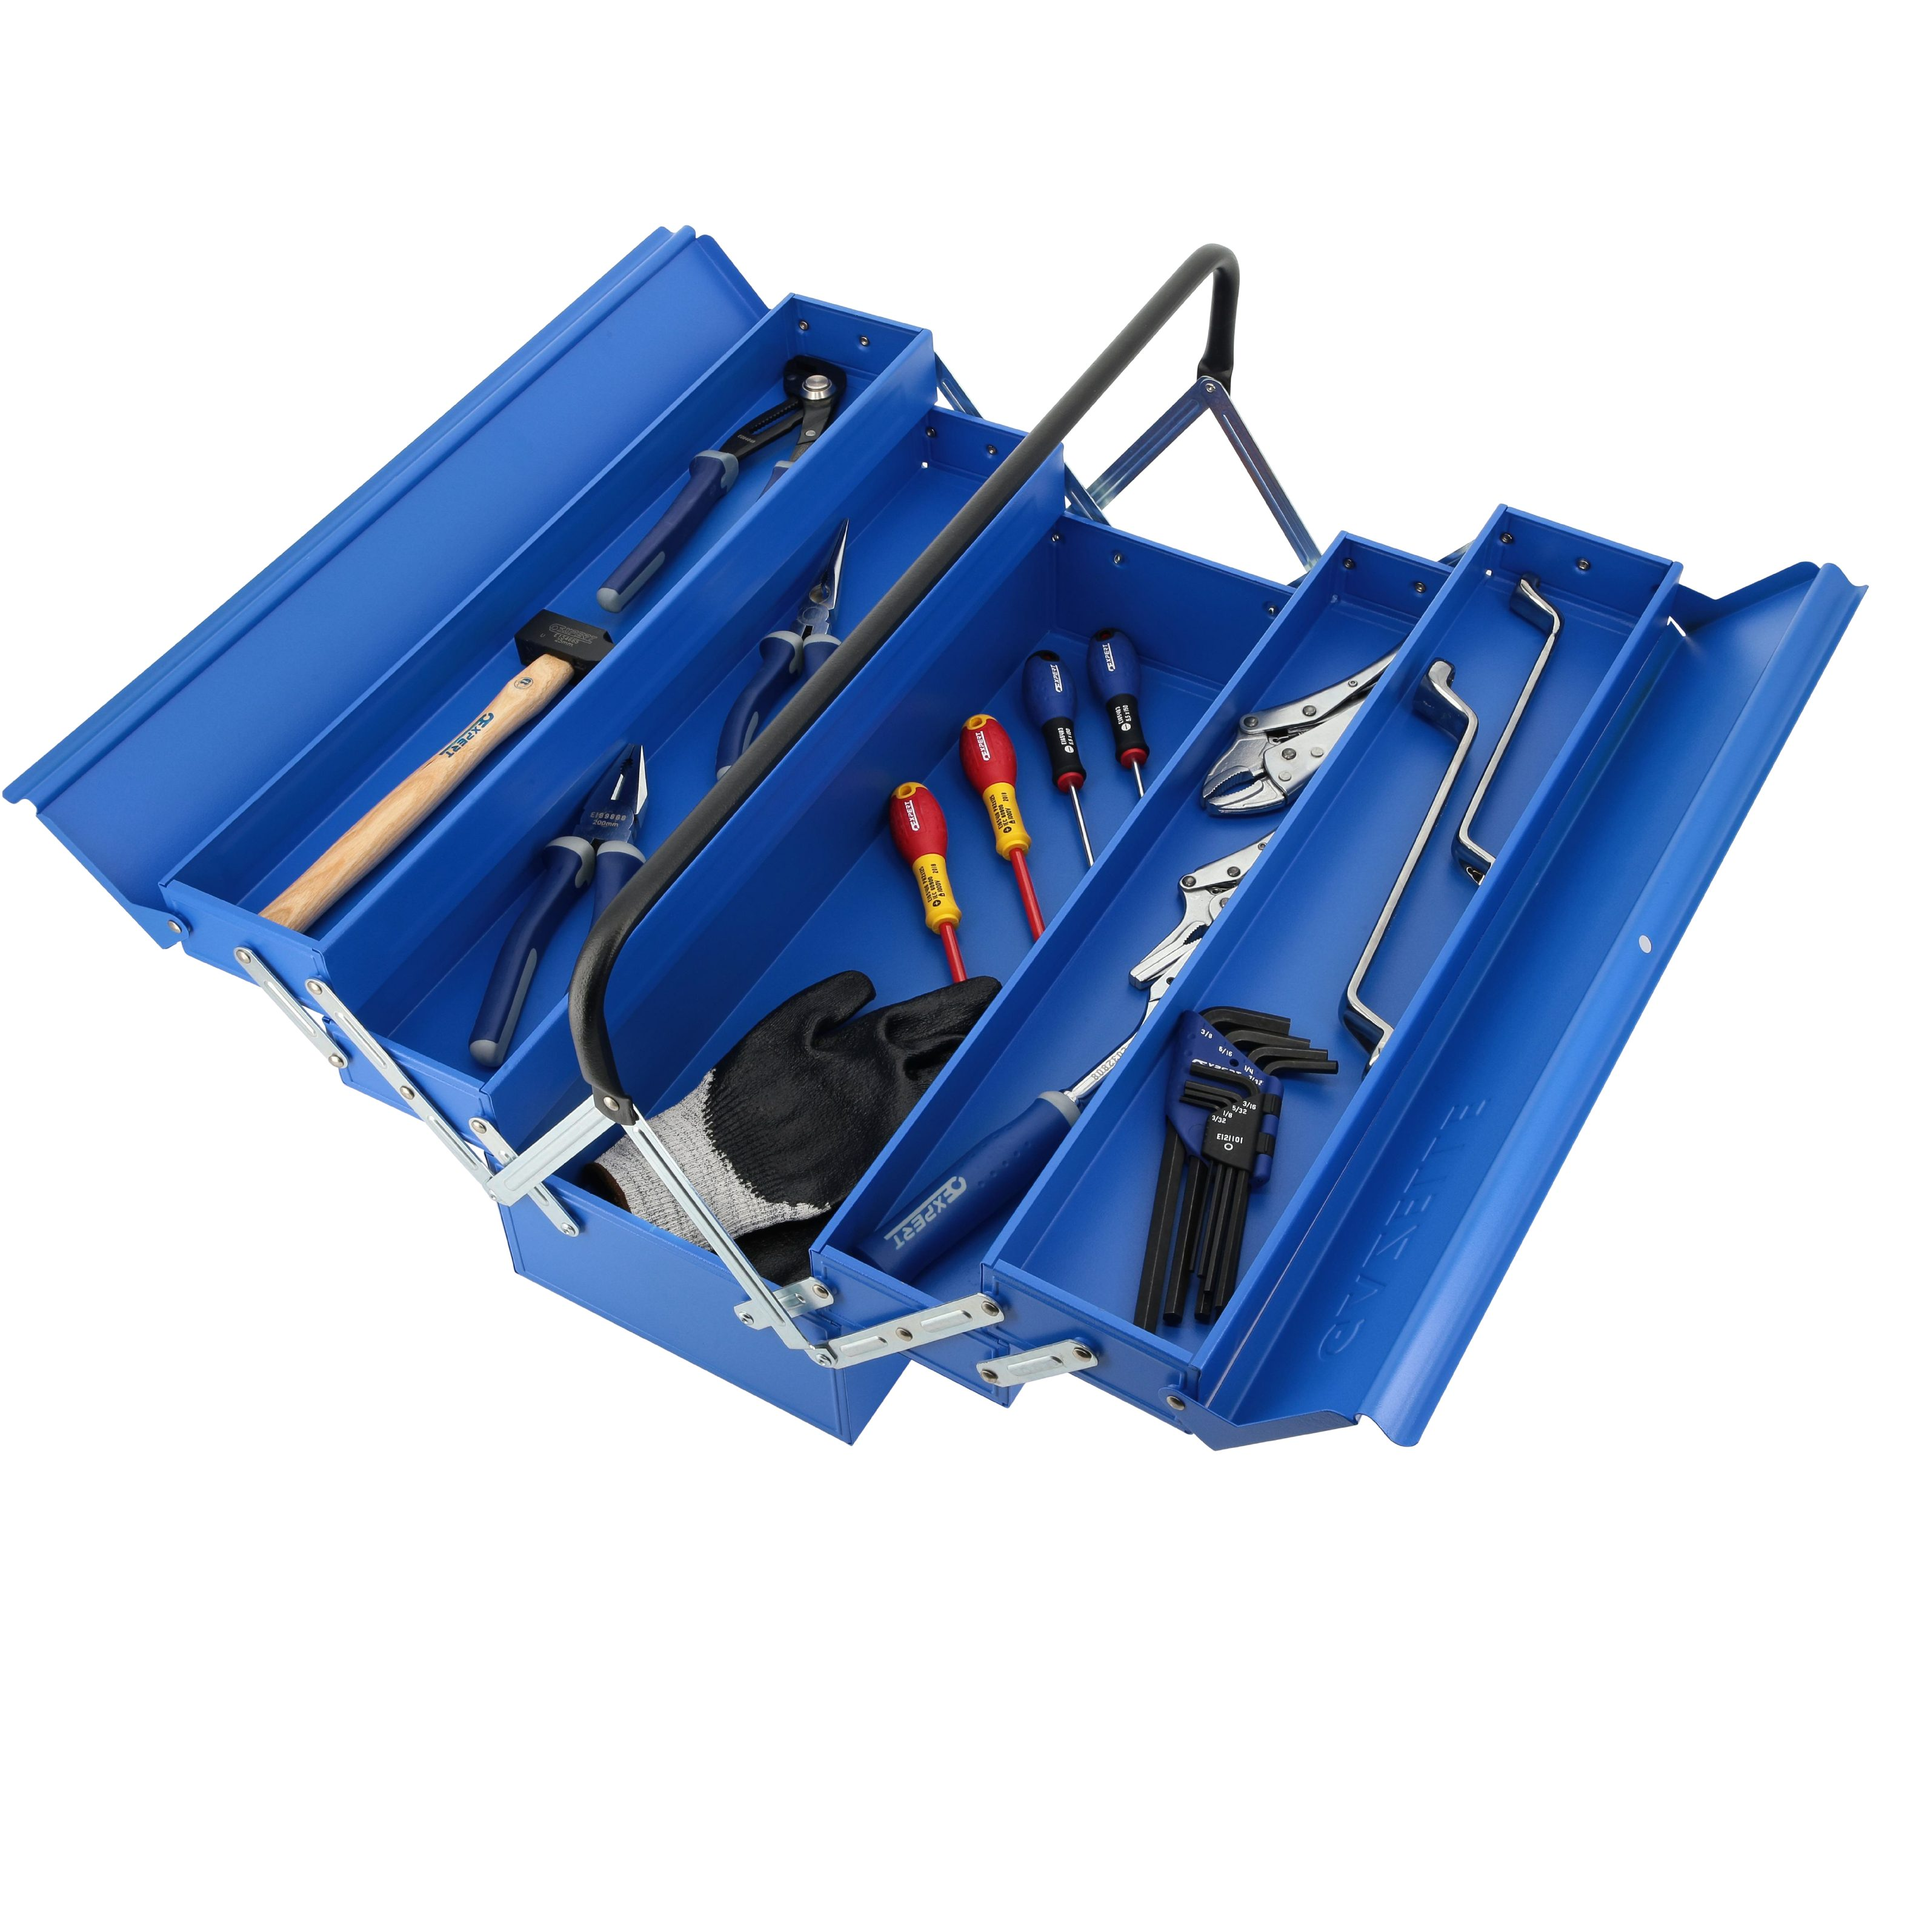 - G2021 21 Inch 5 tray cantilever tool box